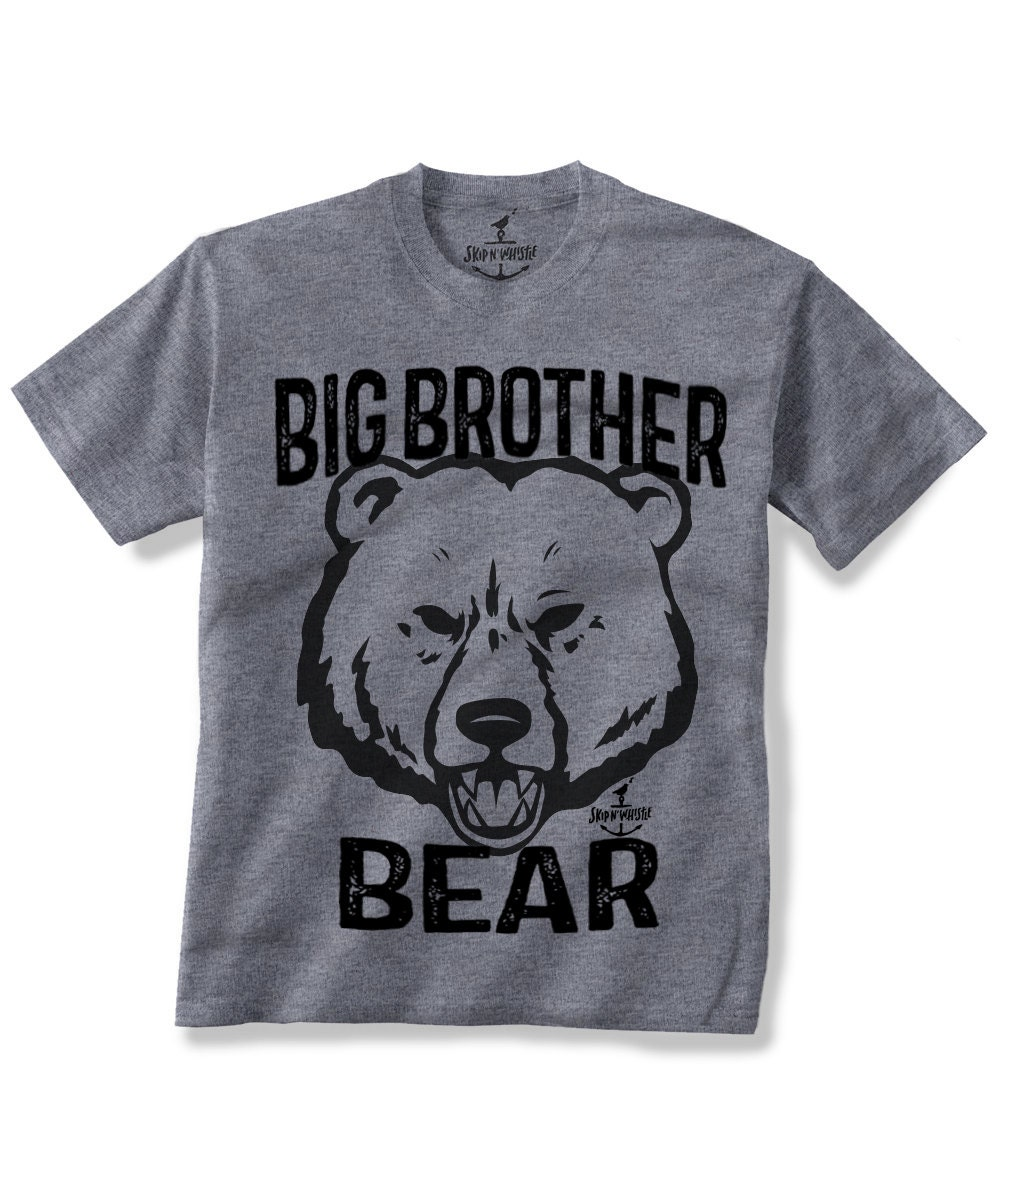 BIG BROTHER BEAR Kids T shirt 7 color choices Size 2t